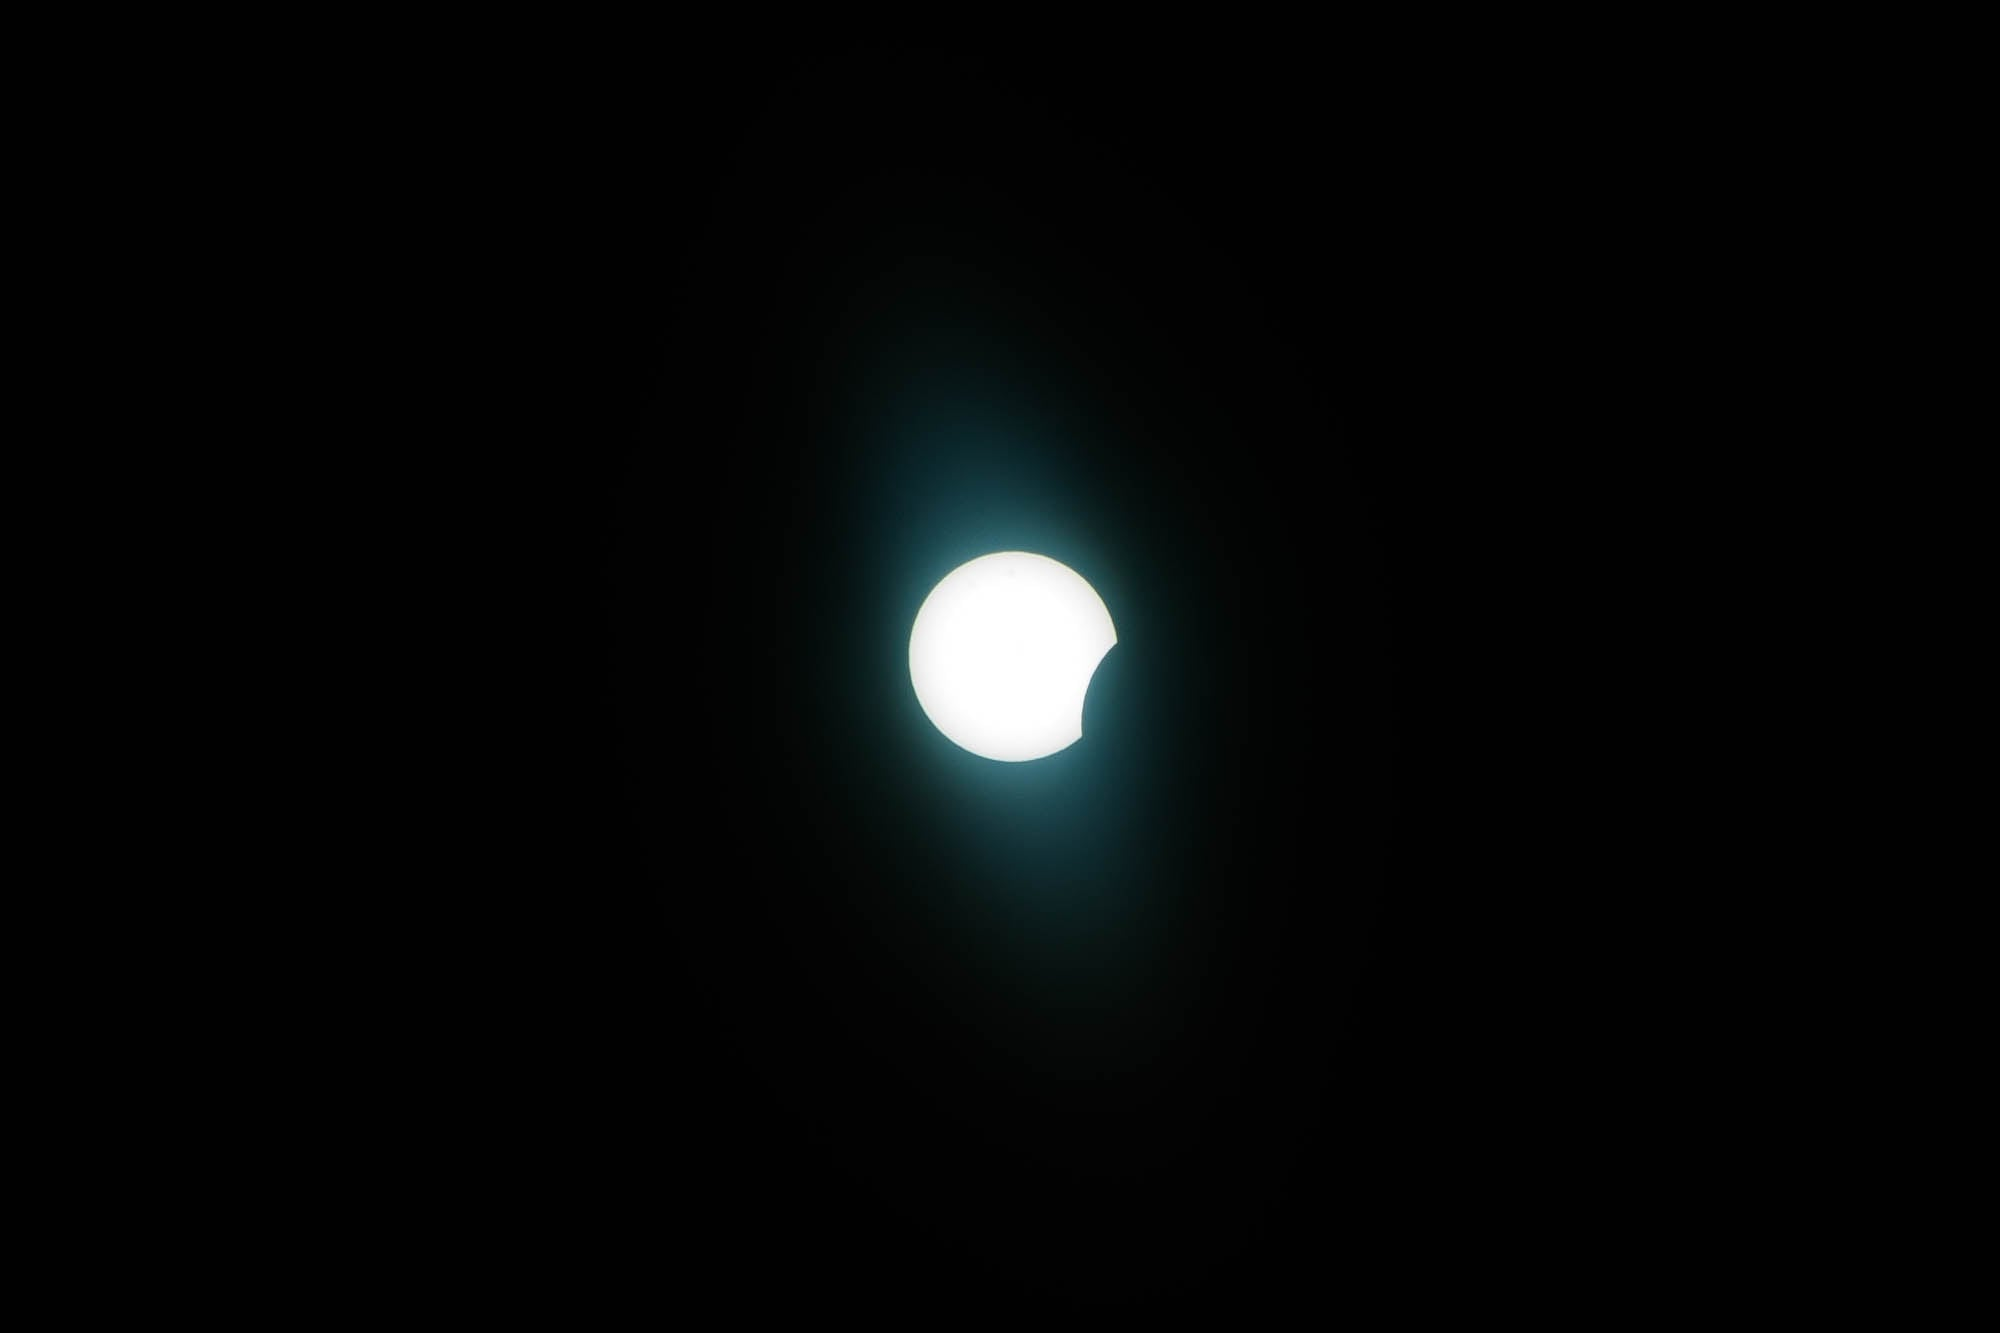 start of the eclipse